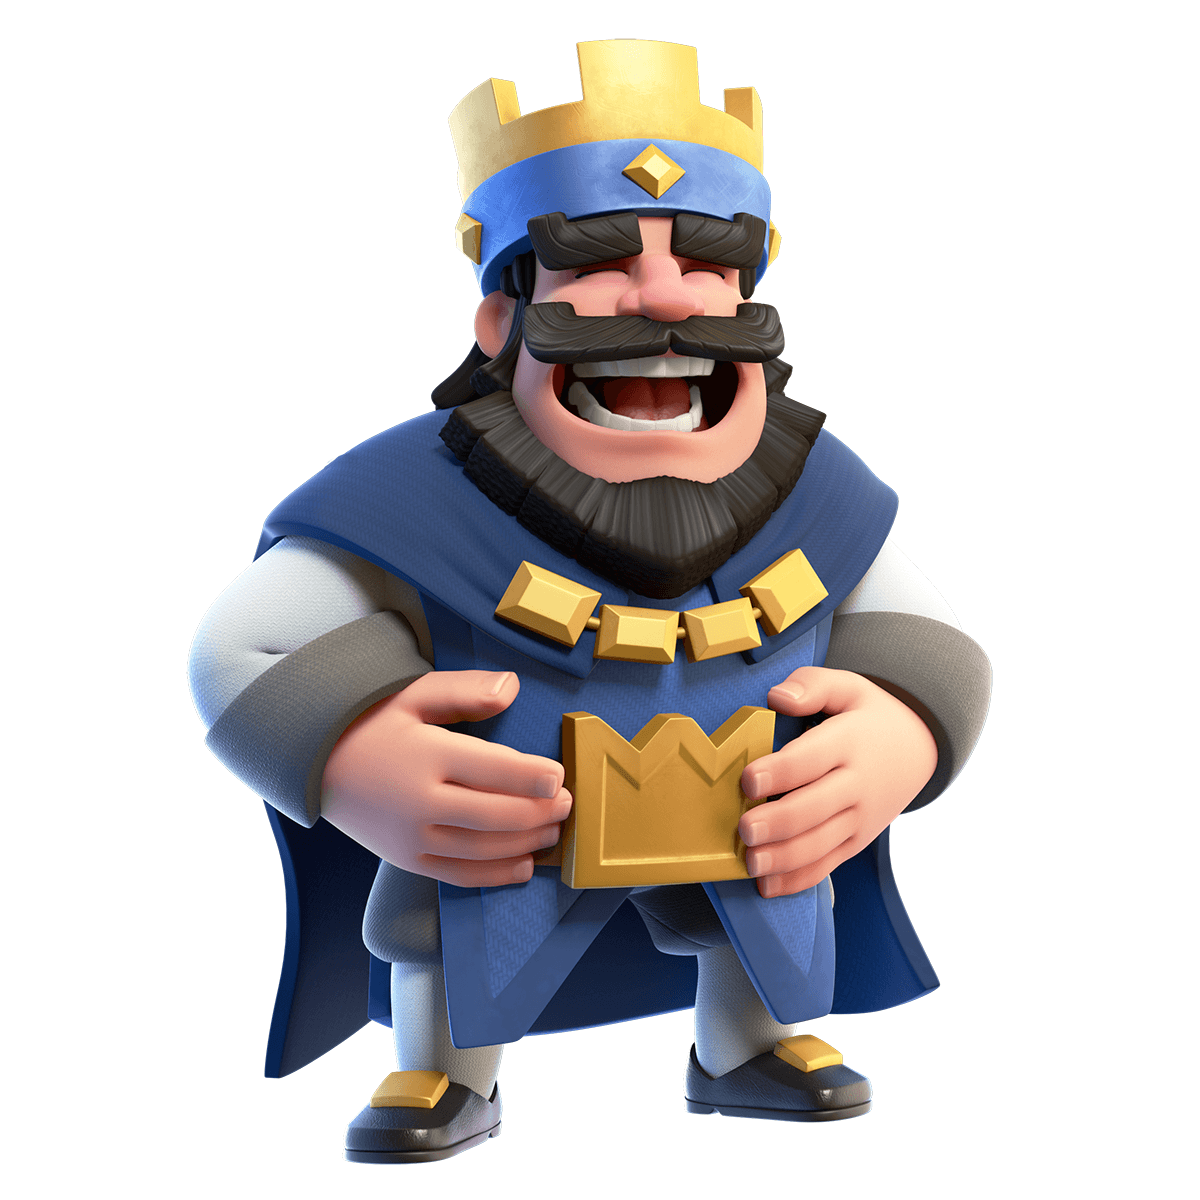 Zip] Download Clash Royale HD wallpapers and Pictures for PC and …